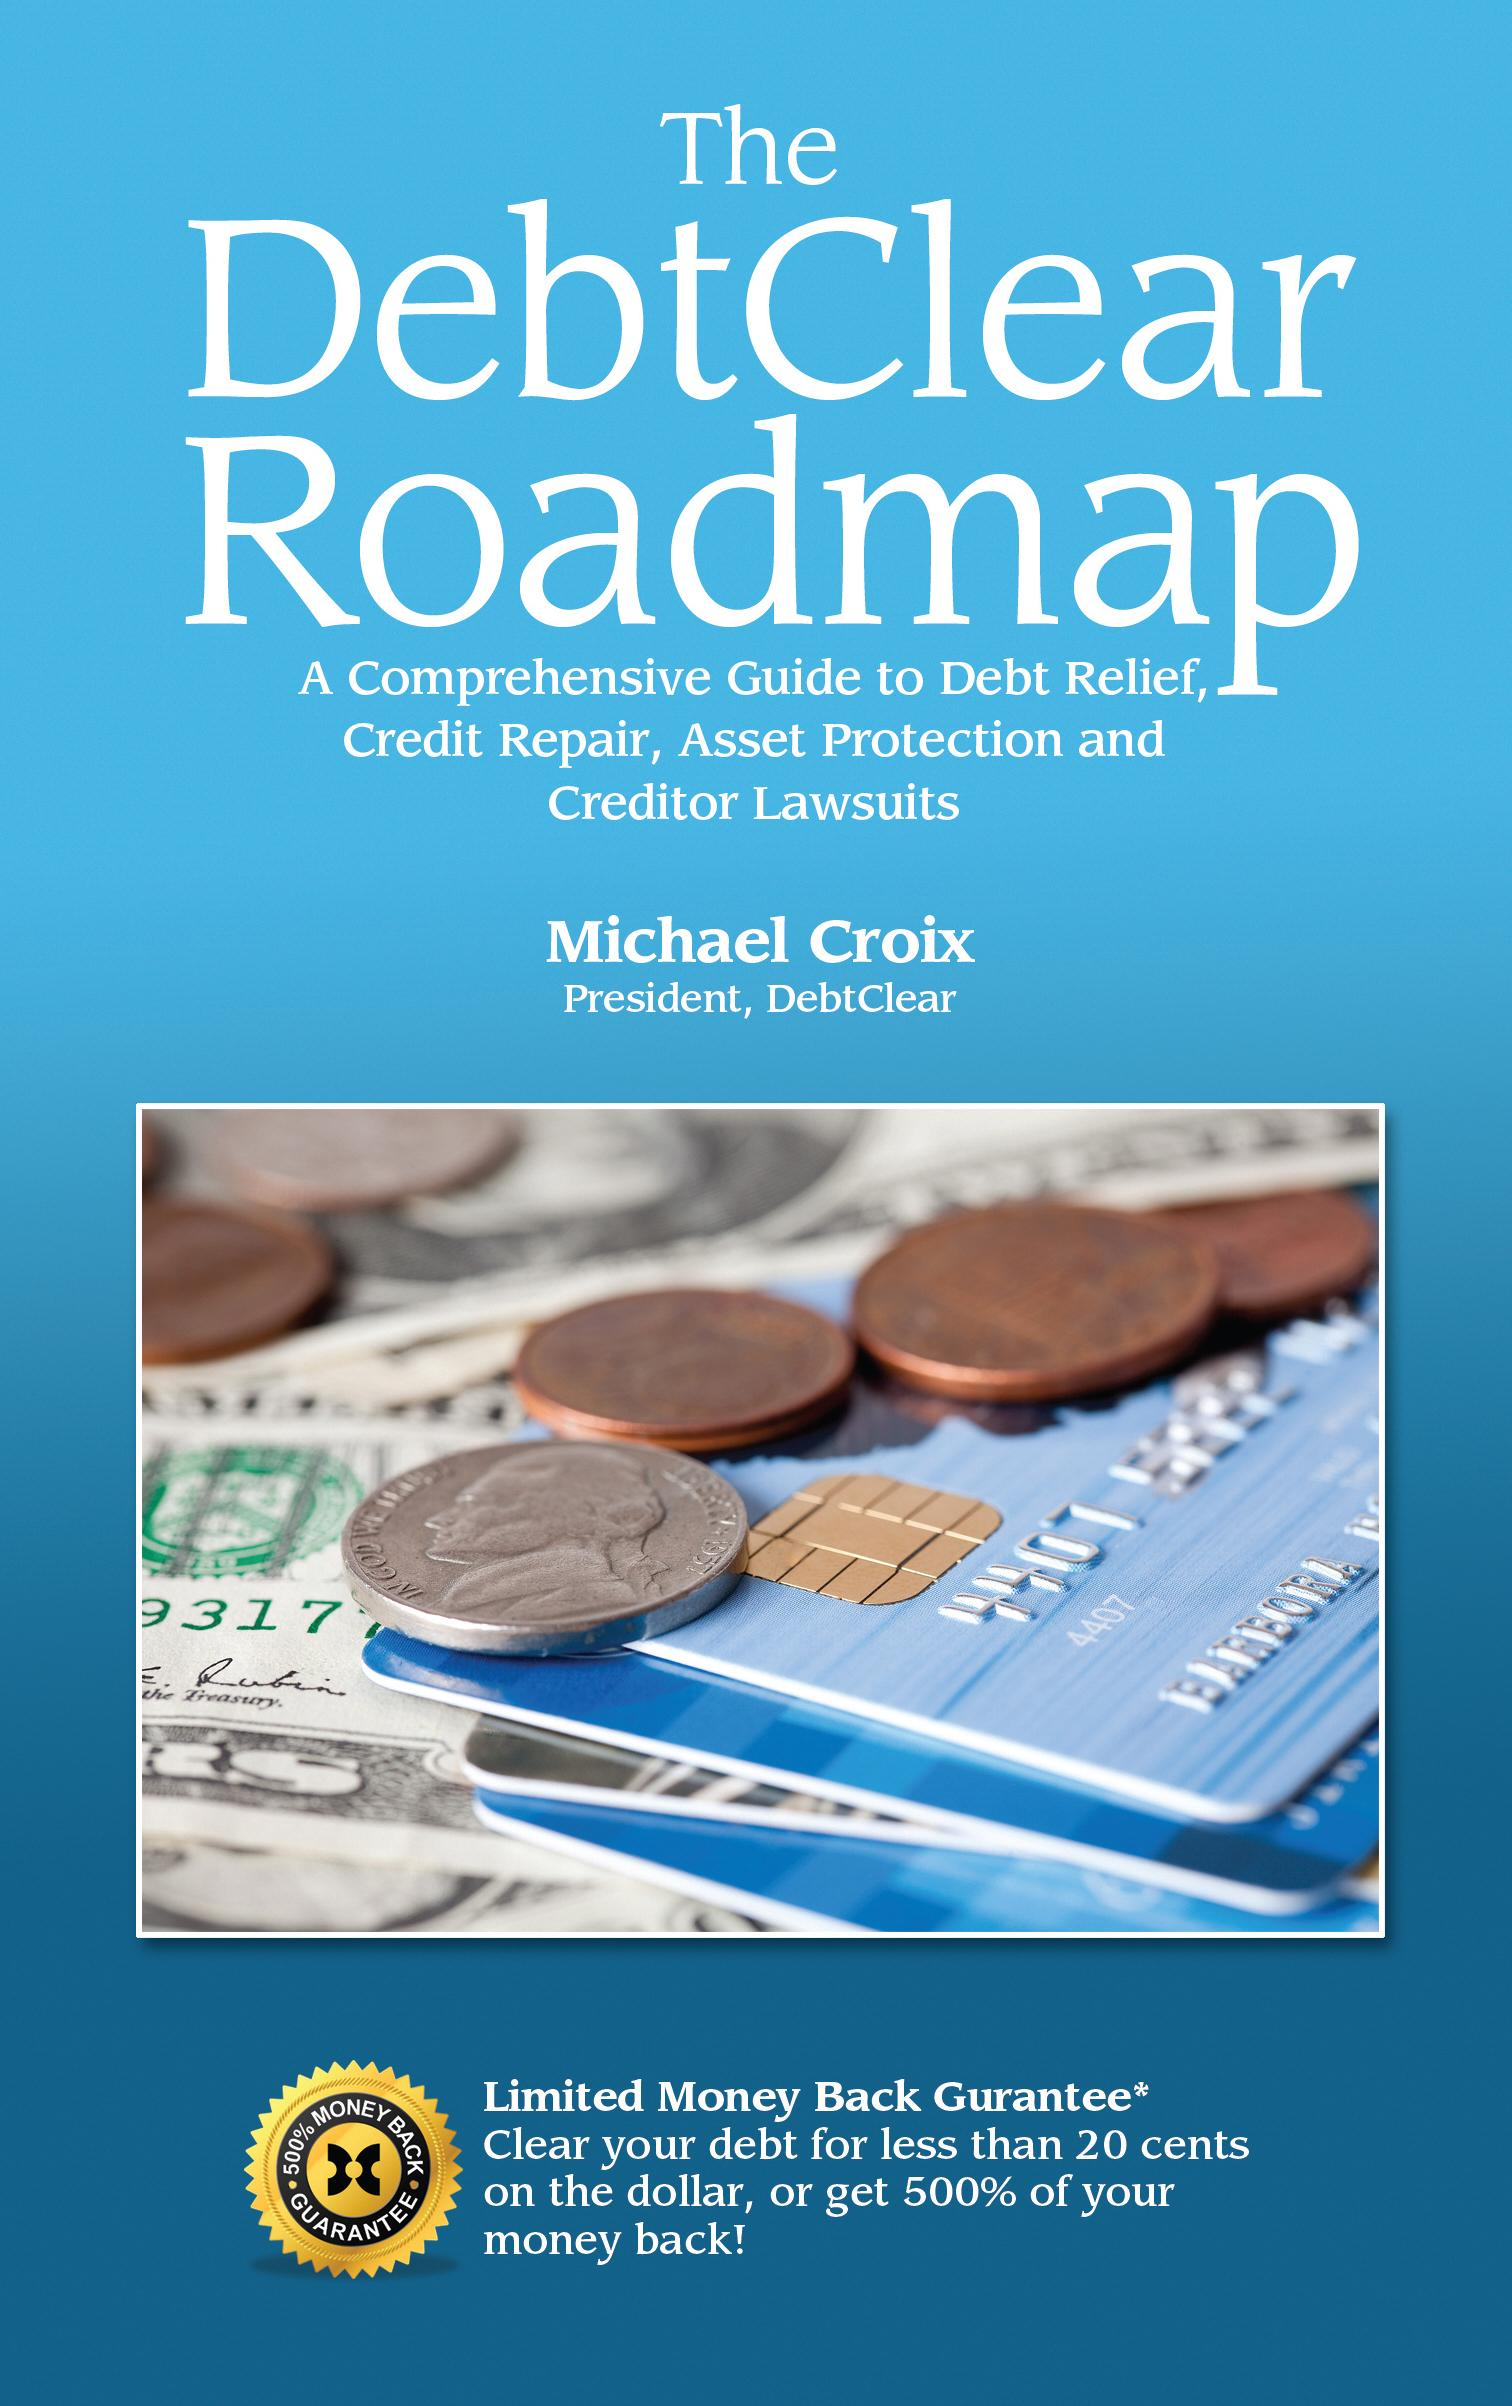 The DebtClear Roadmap: A Comprehensive Guide to Debt Relief, Credit Repair, Asset Protection, and Creditor Lawsuits EB9781450779067